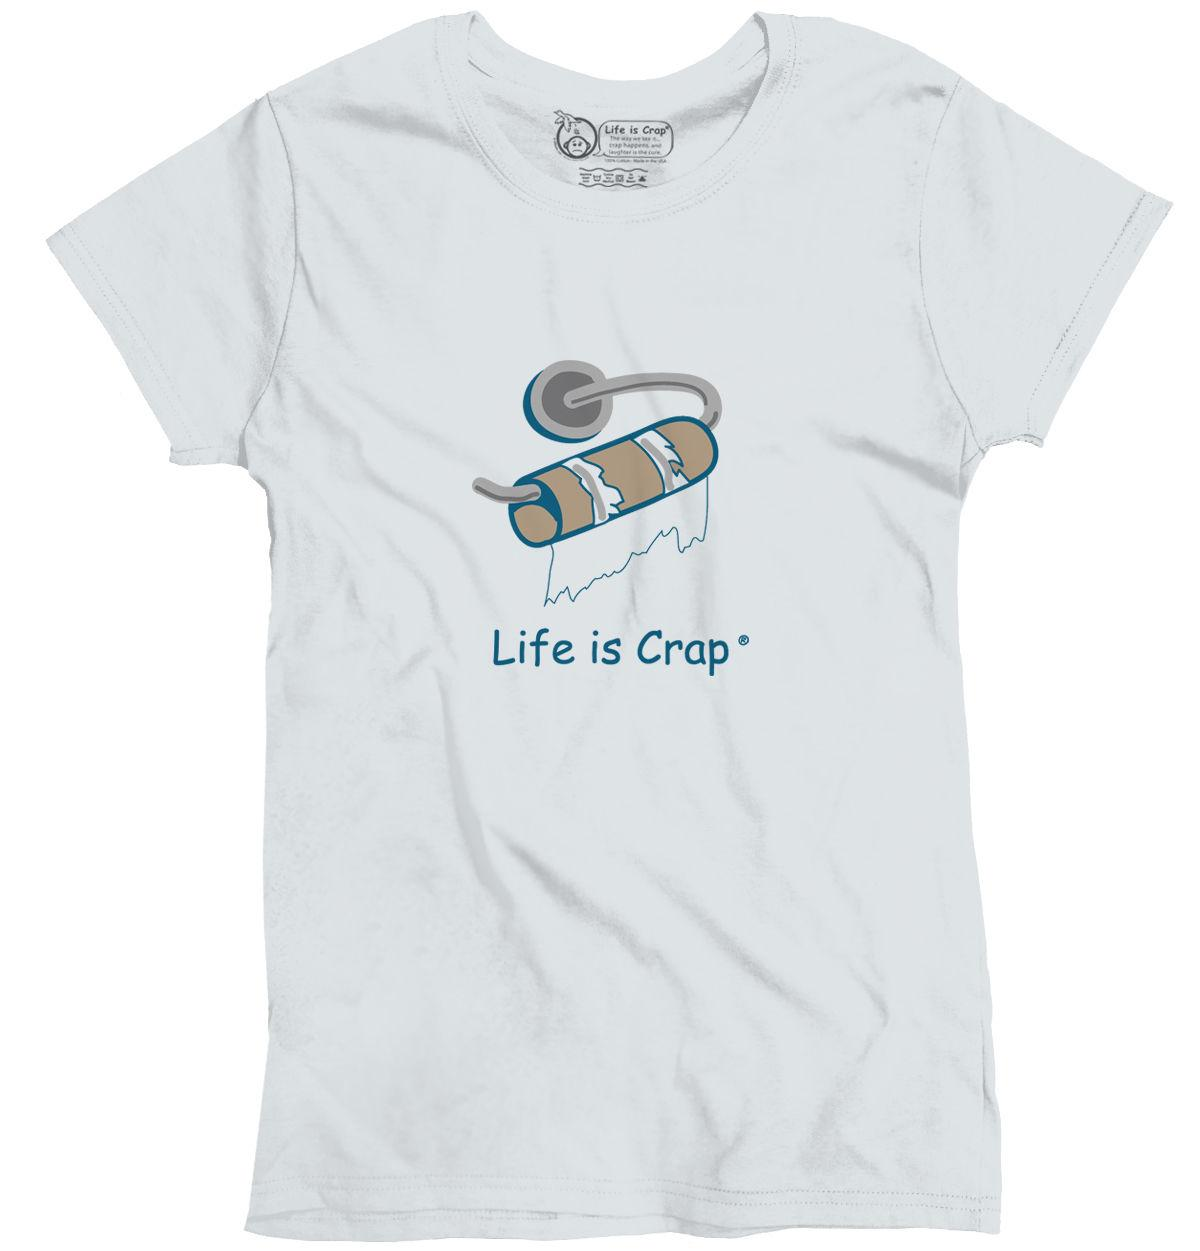 Life Is Crap Toilet Paper Good Life Funny Shirts Gift Ideas Ladies T-Shirt Sexy Fashion T Shirt Printed Letter Tops Tee